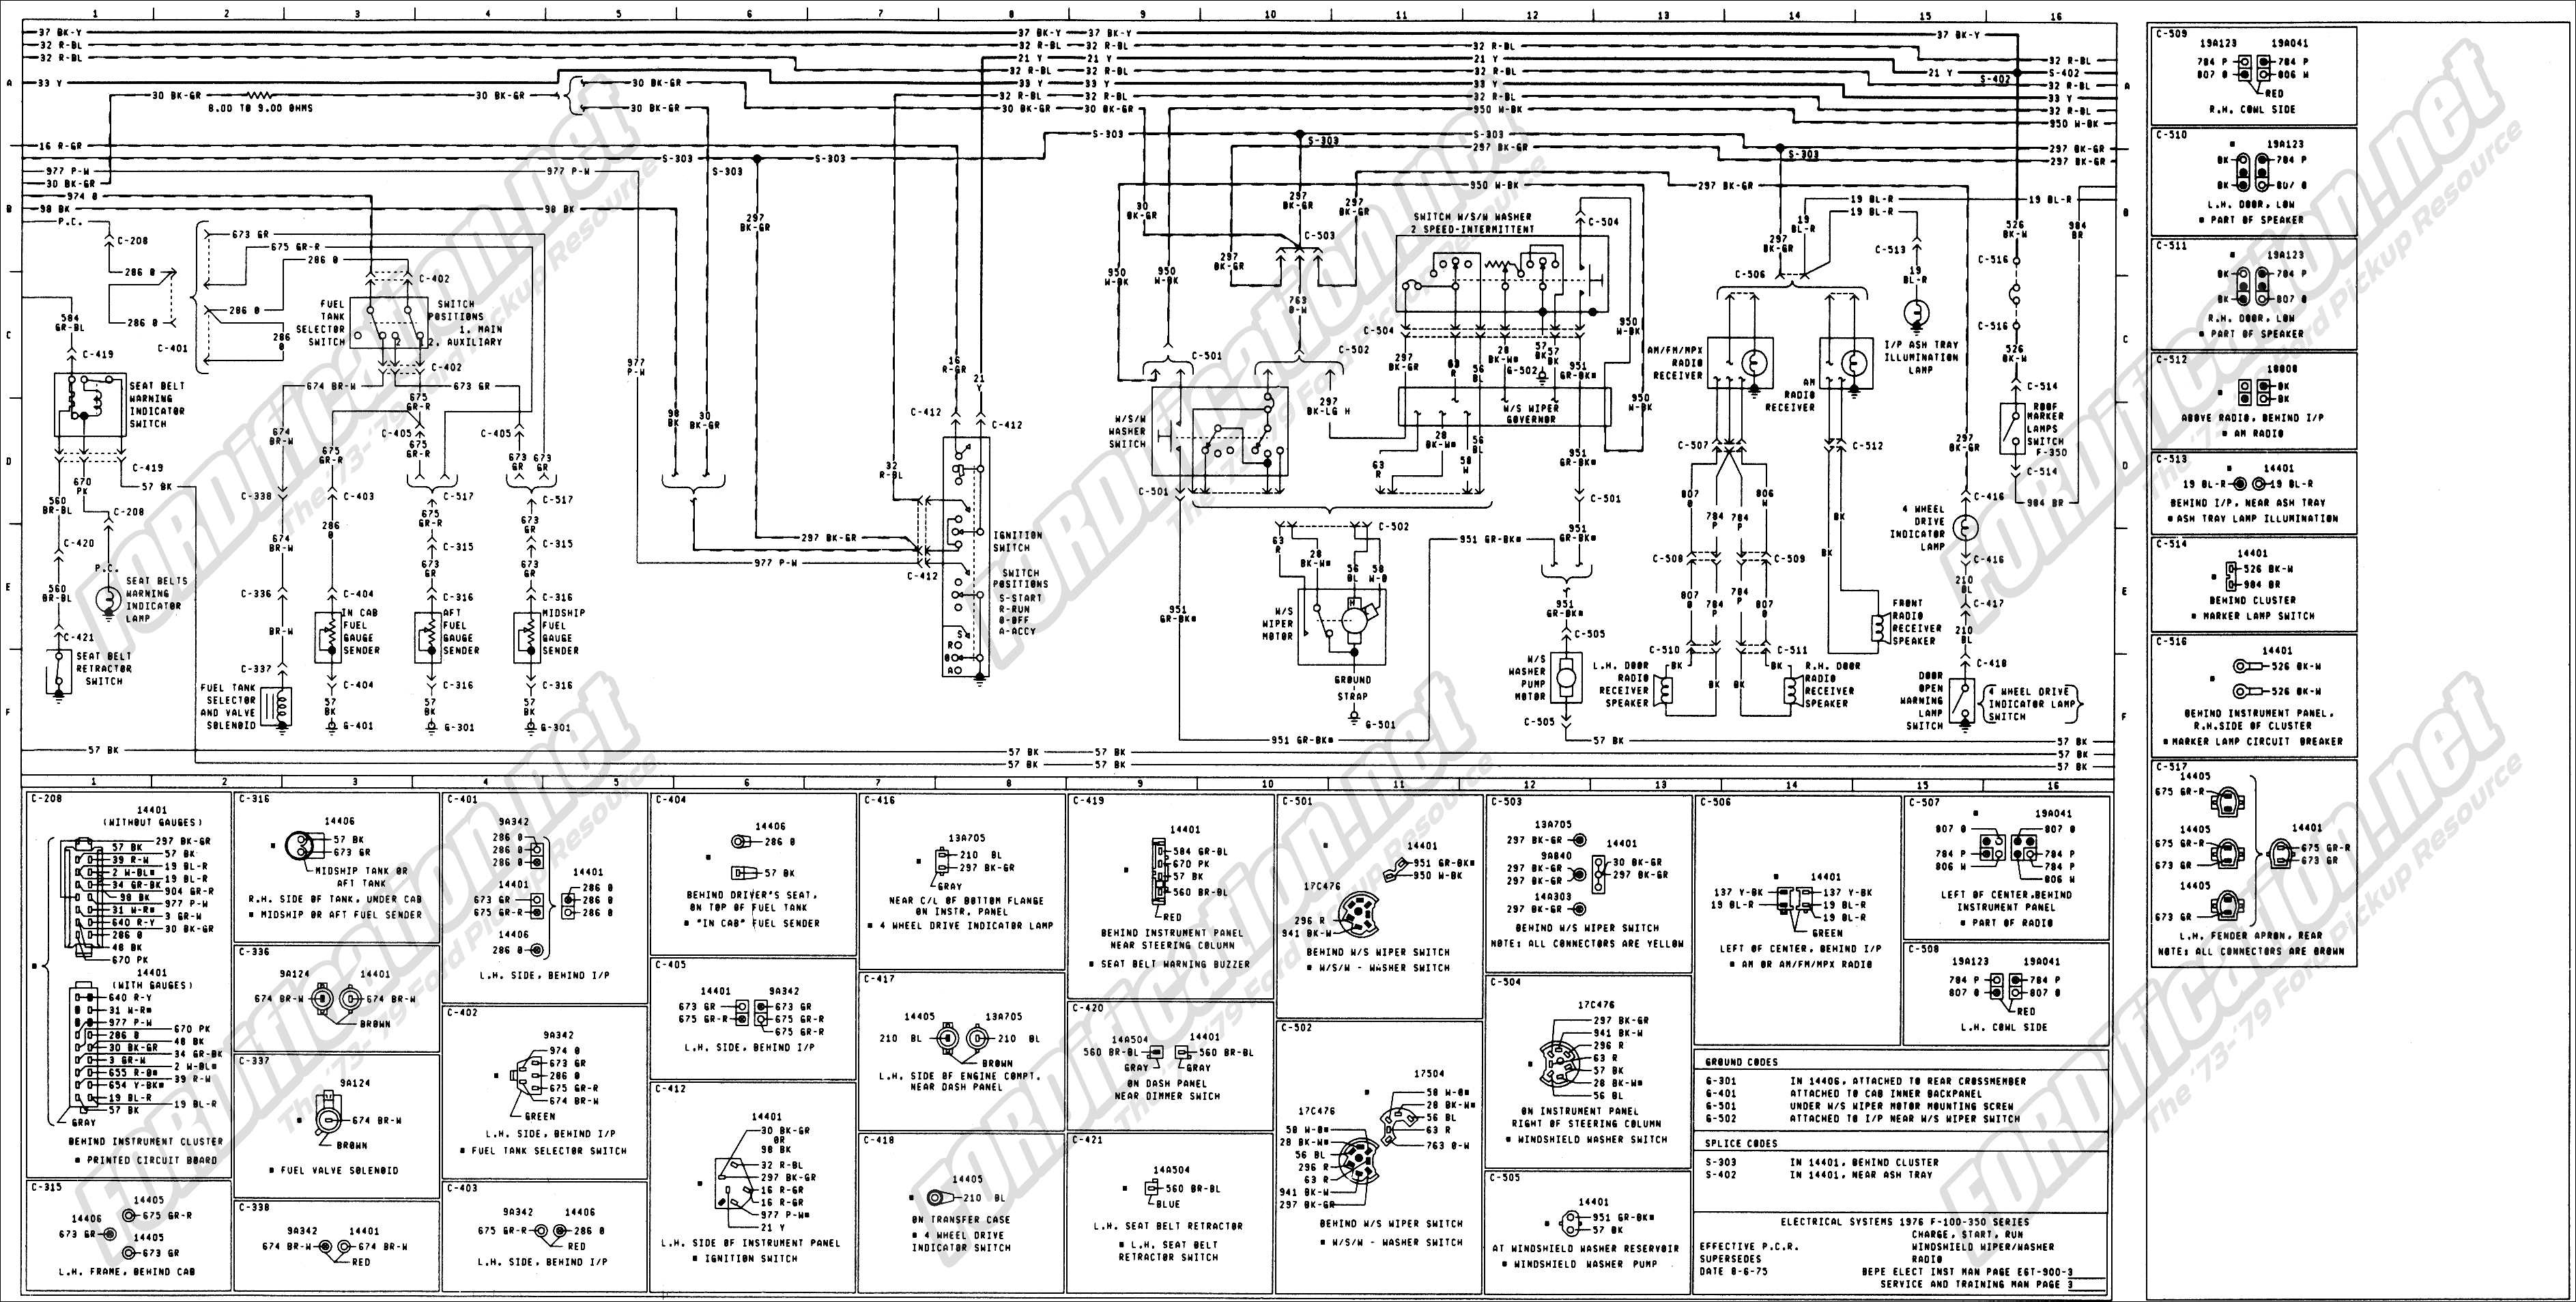 F250 Ford Wiring Diagram | Manual E-Books - 2008 Ford Super Duty Trailer Wiring Diagram